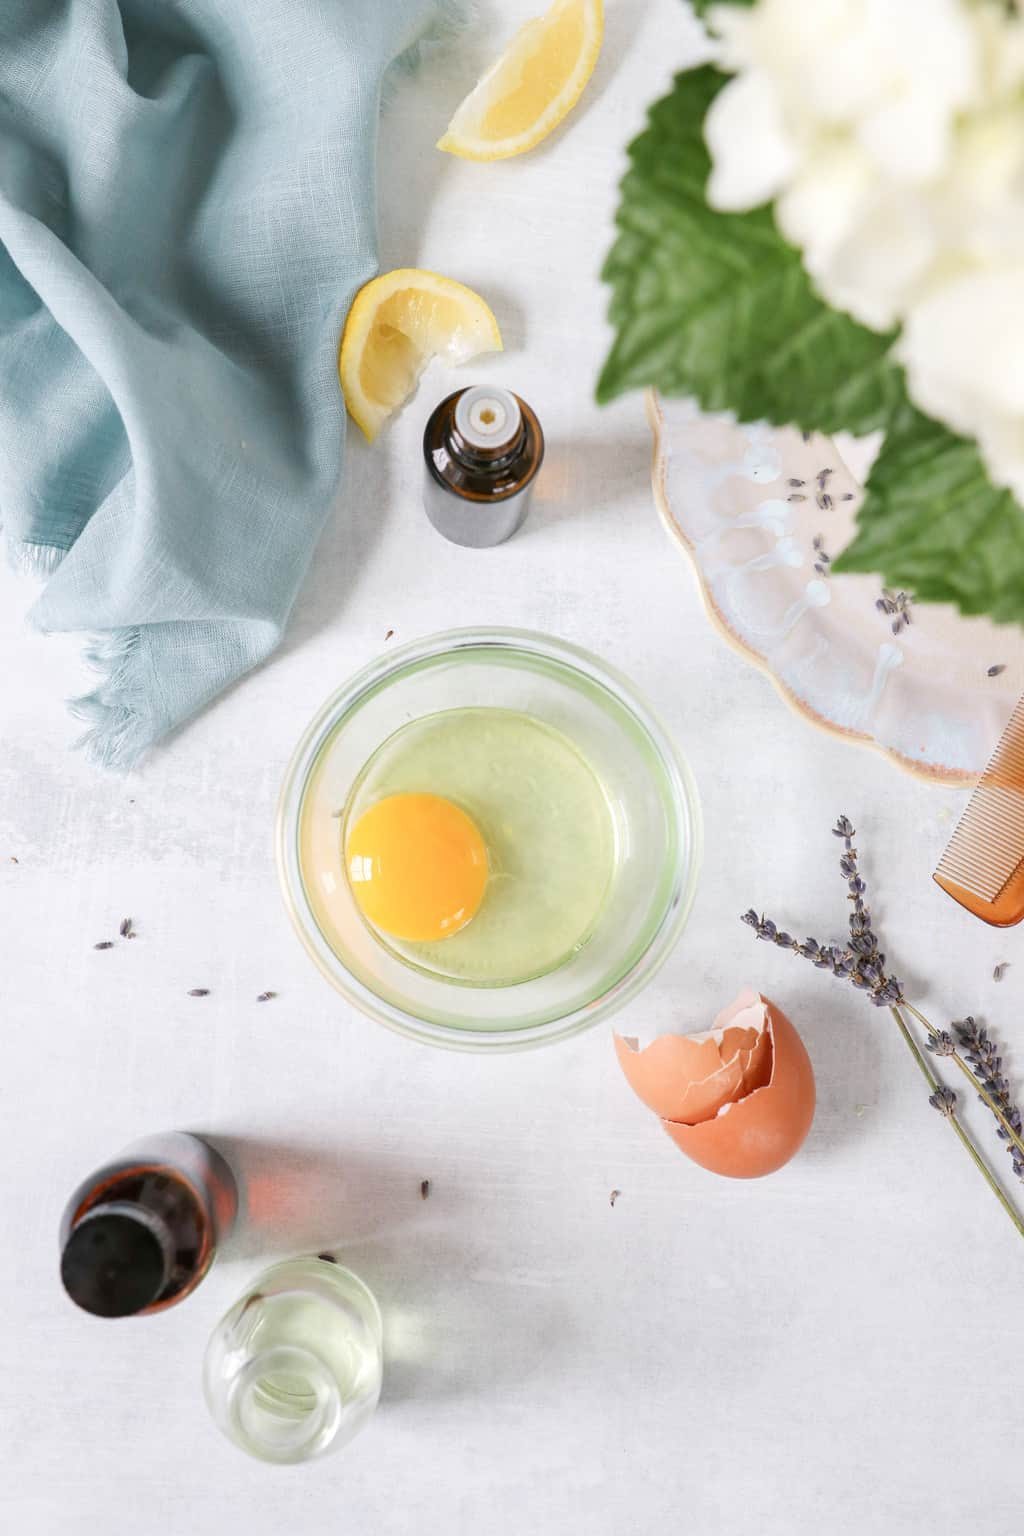 How to use eggs for hair recipes